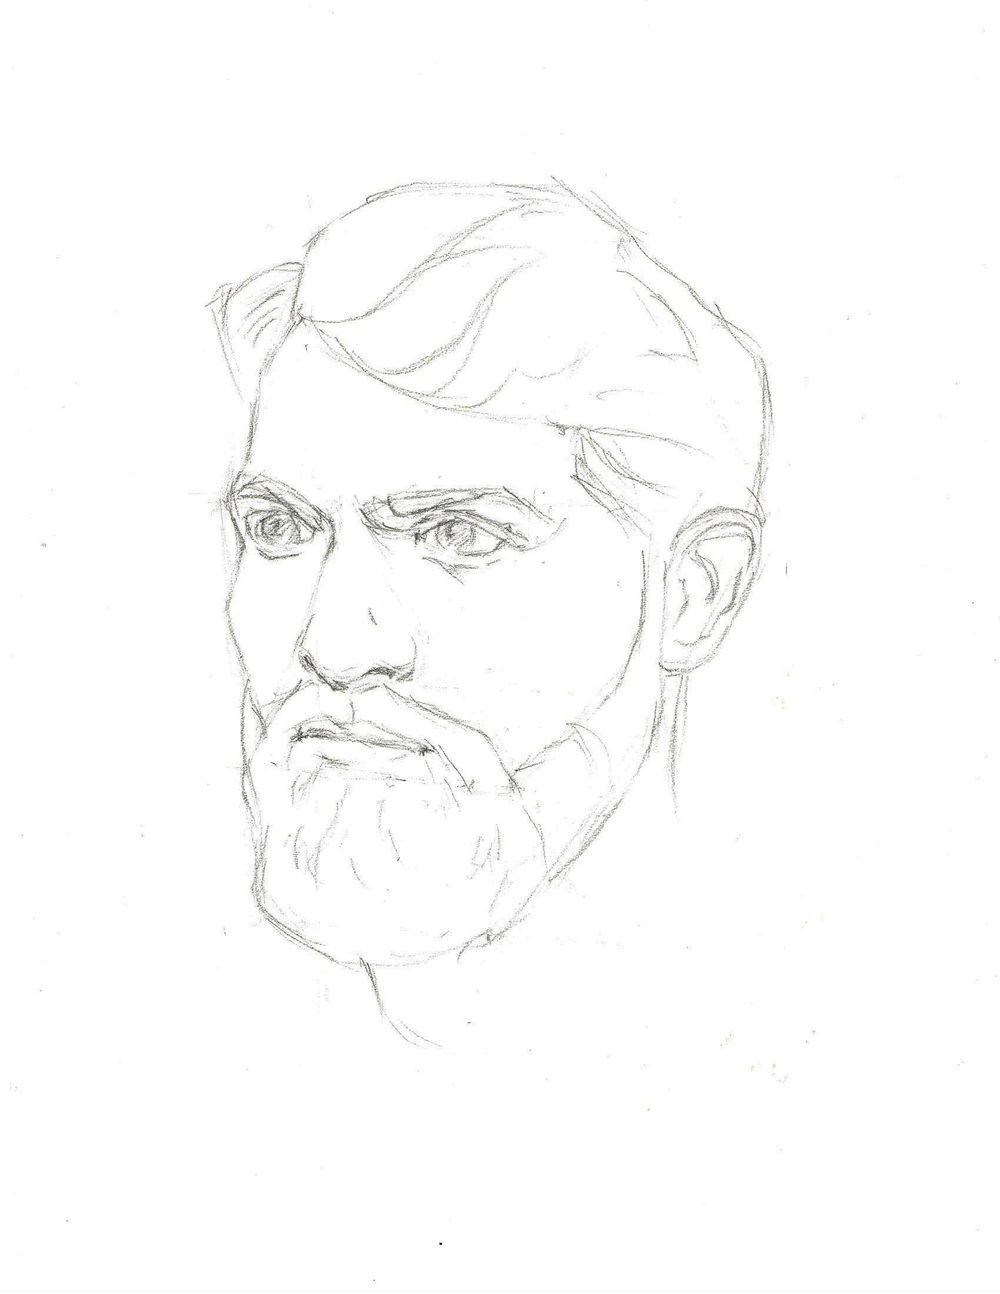 10 minute sketch - image 3 - student project